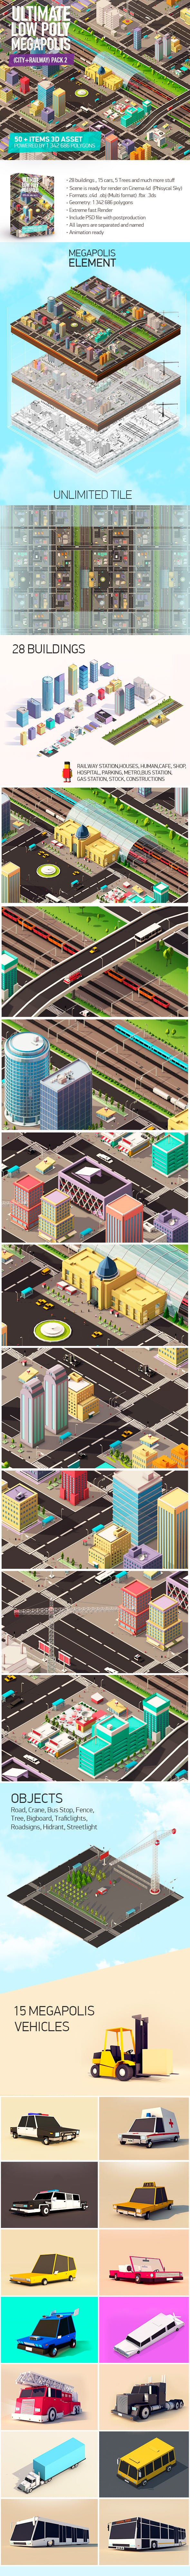 Ultimate Low Poly Megapolis Pack2 (City + Railway) - 3DOcean Item for Sale